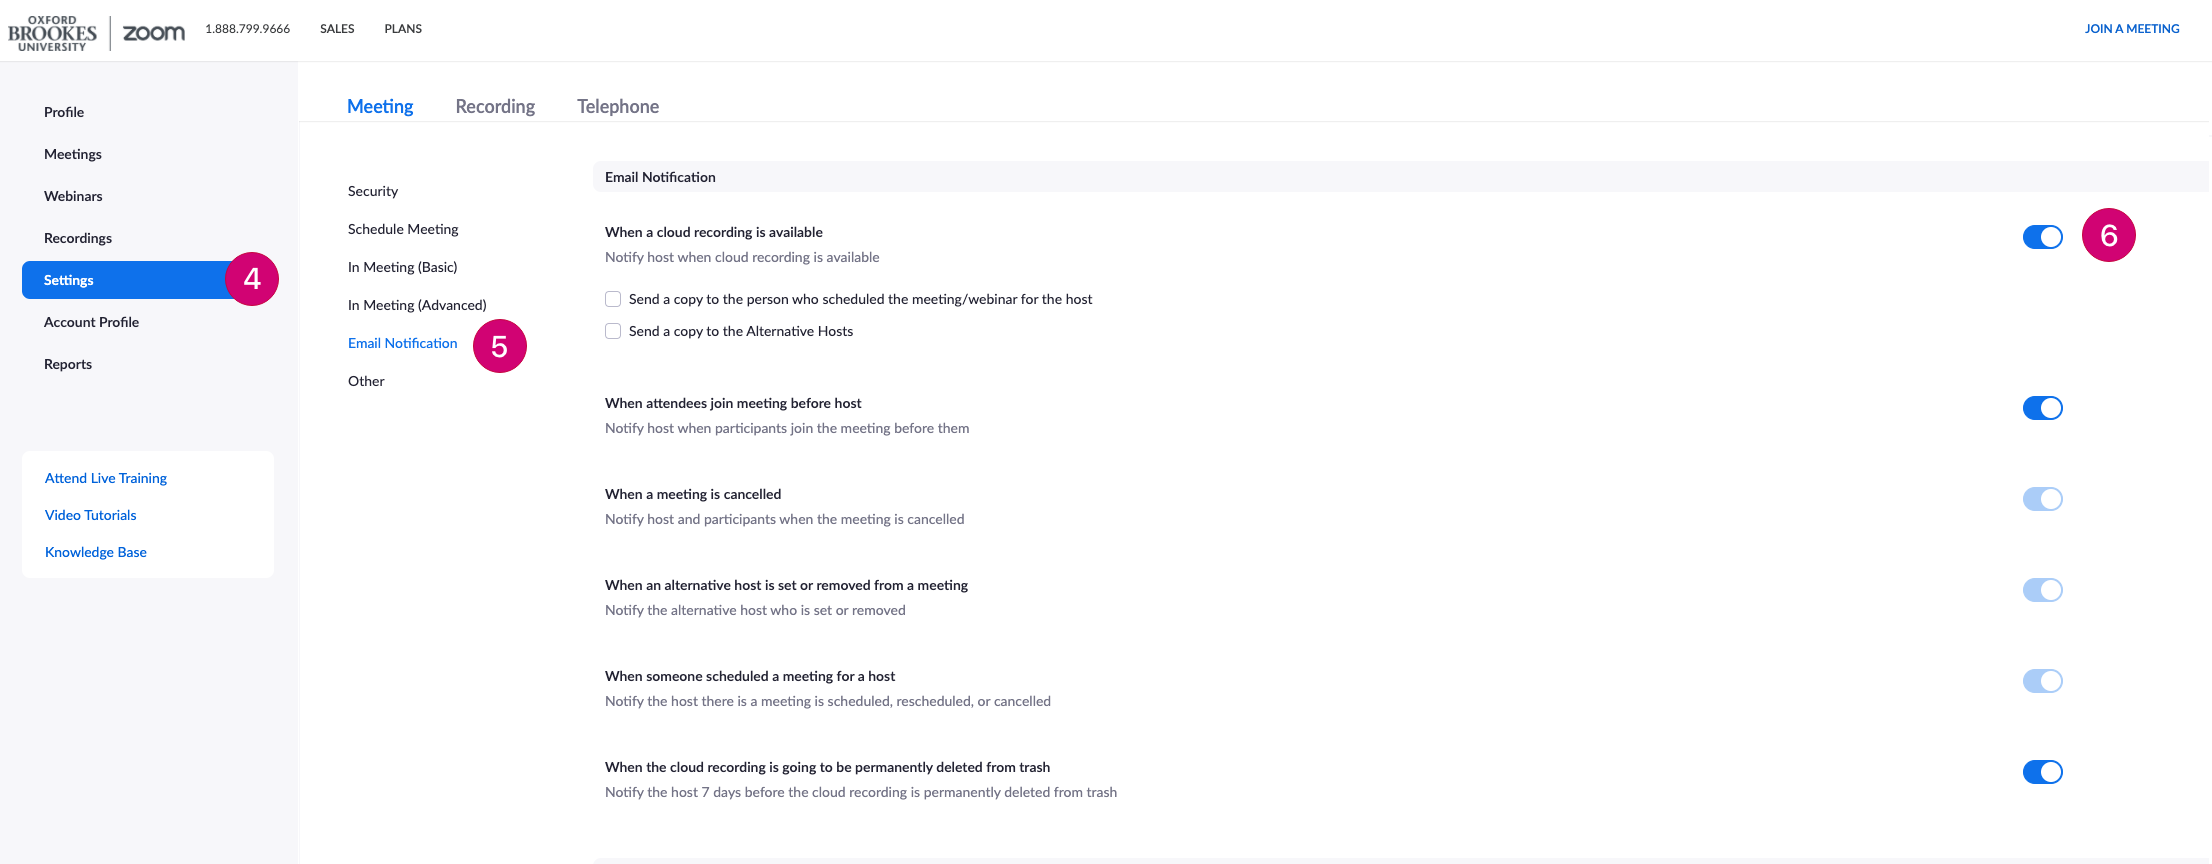 Screenshot of the Zoom admin interface that shows numbered steps to enable email notifications for cloud recordings.